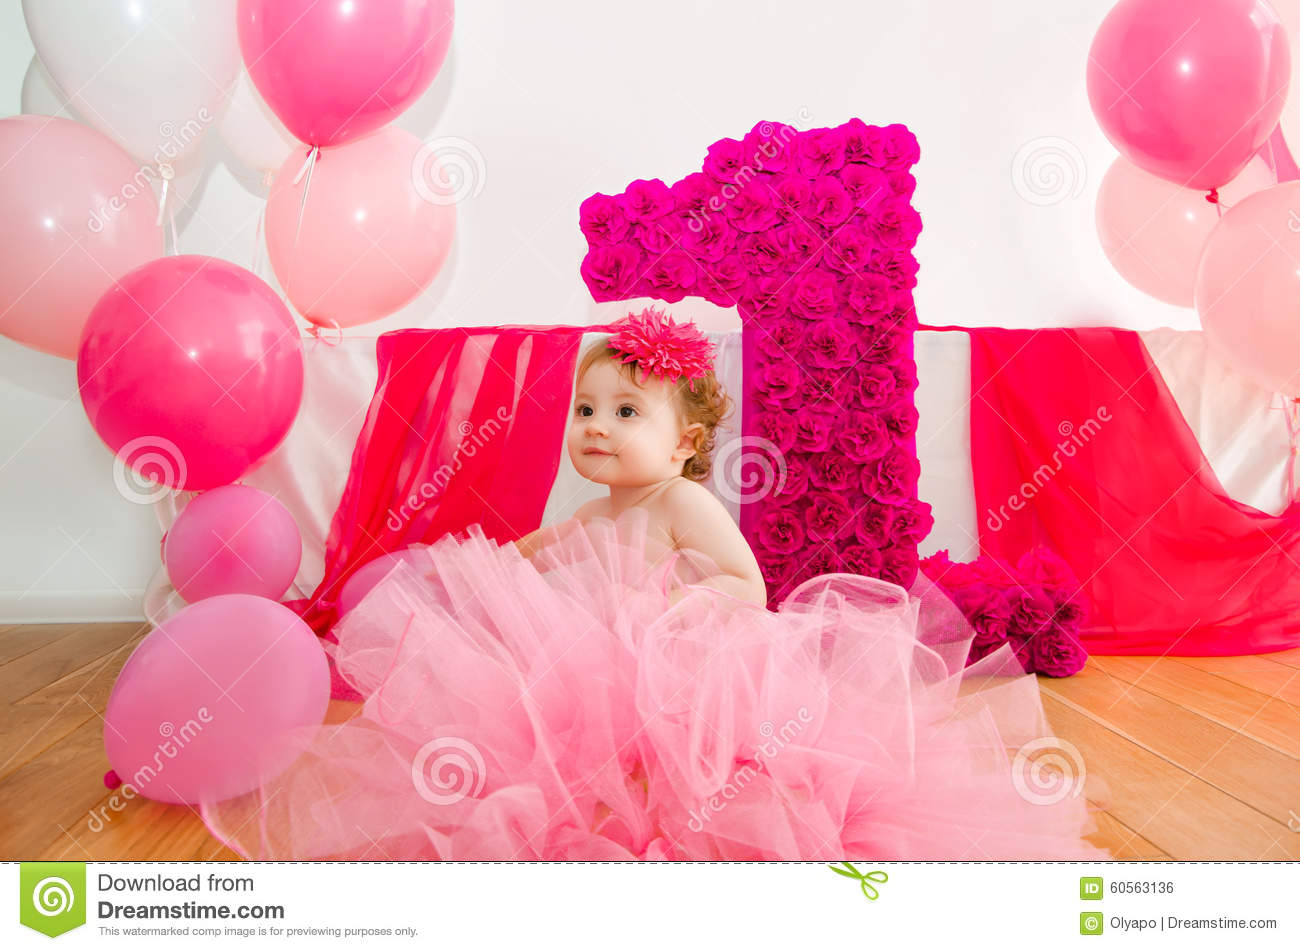 premier anniversaire b b dans la jupe rose pelucheuse avec des ballons et un bi photo stock. Black Bedroom Furniture Sets. Home Design Ideas